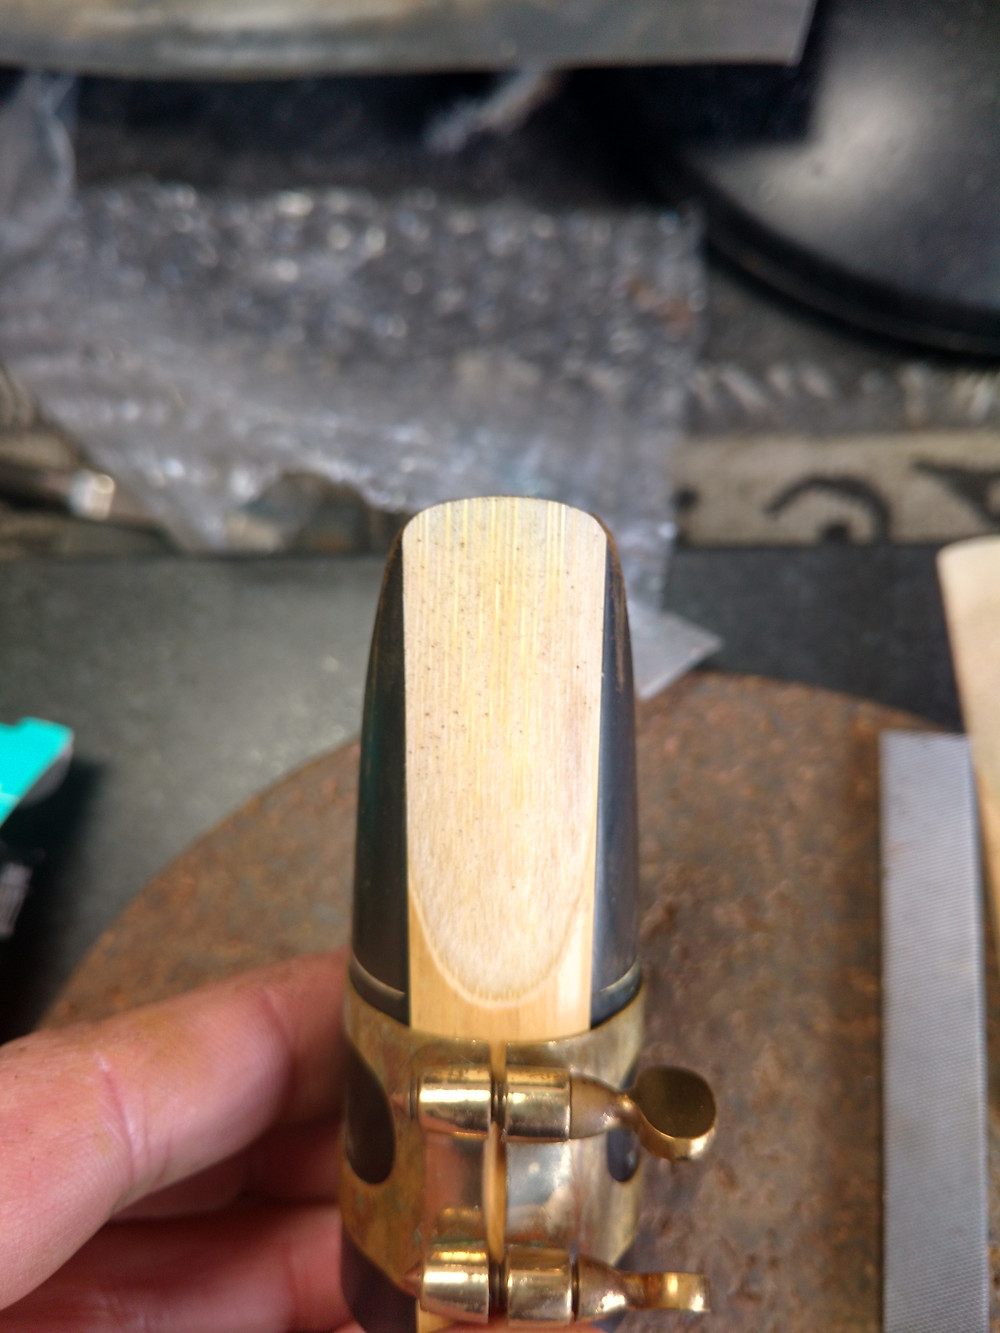 Re-shaping the contour to match a D'Addario Select reed.